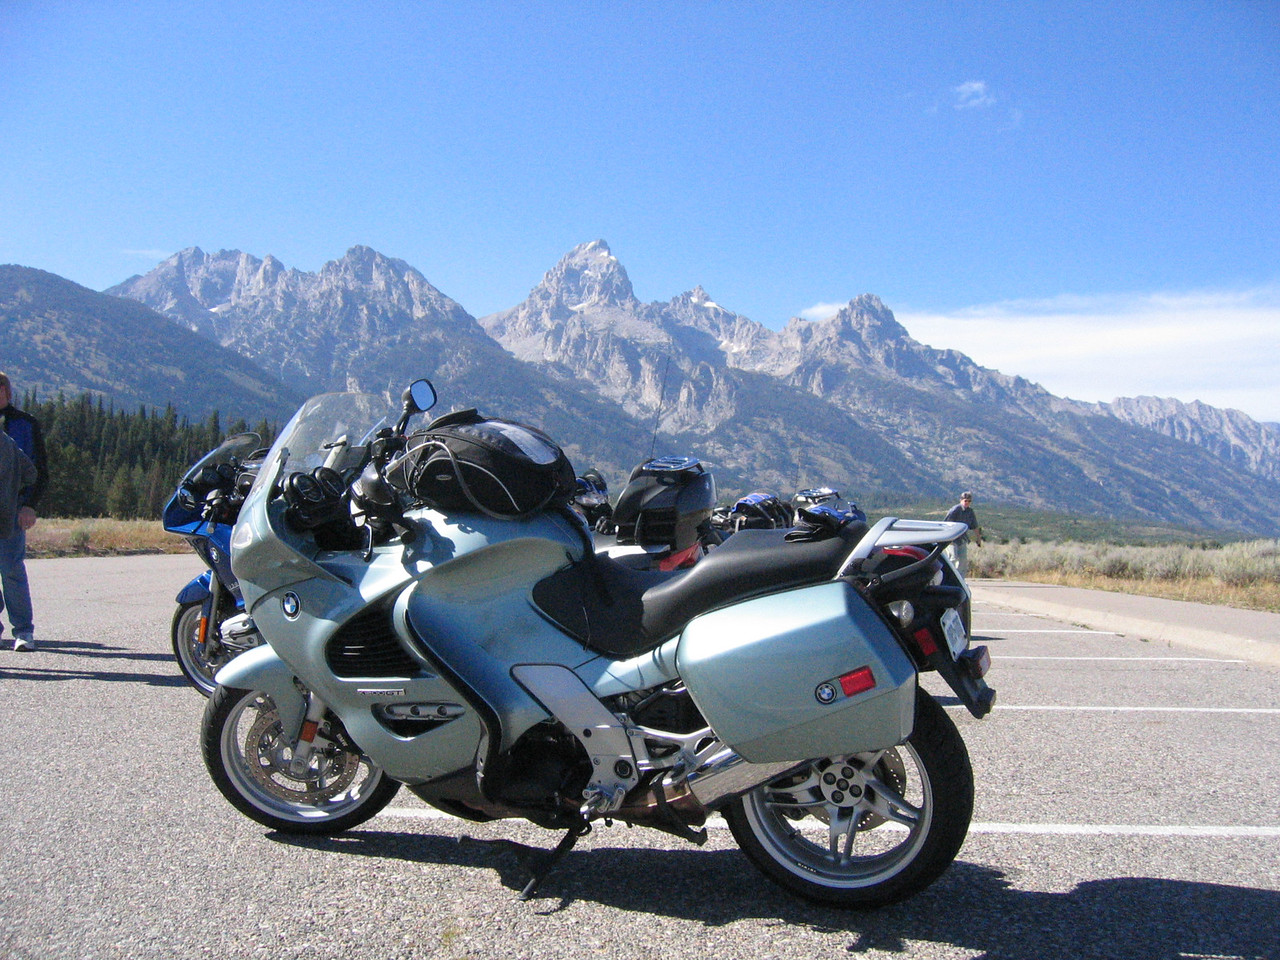 The Mighty-K rests in the shadows of the majestic Grand Tetons.